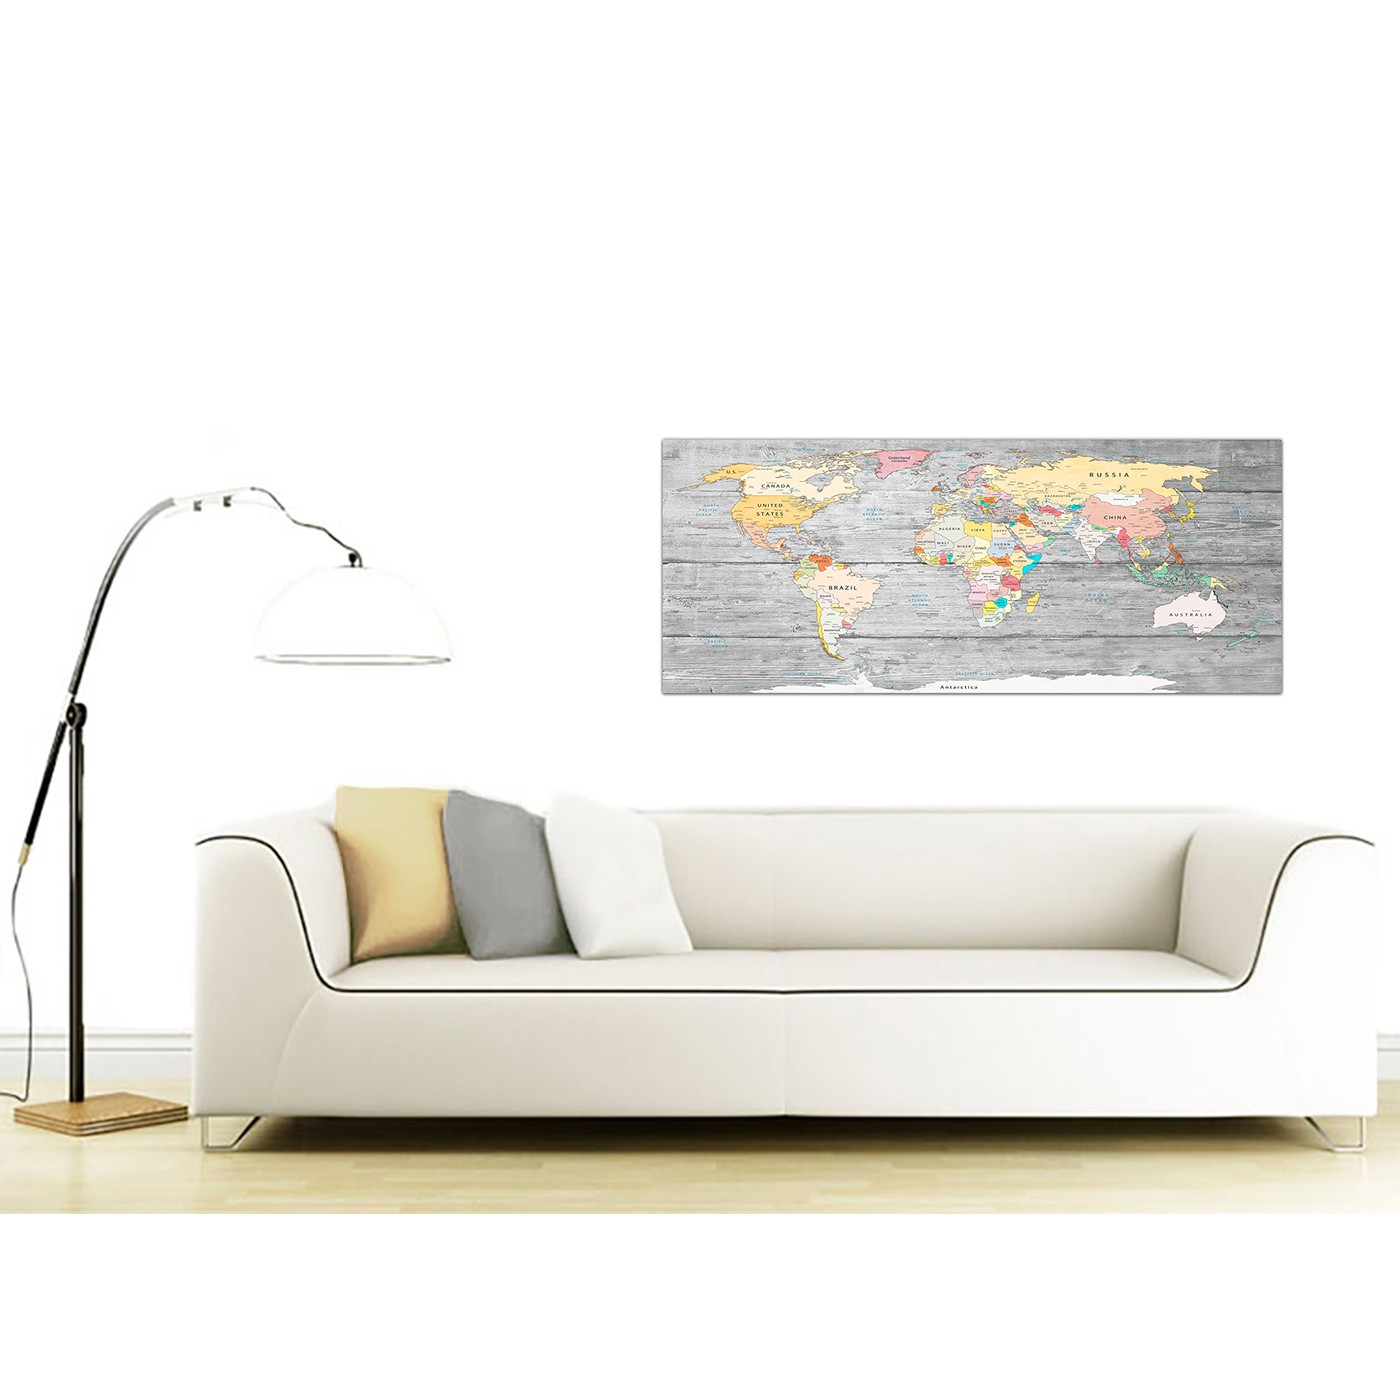 Large map of world canvas art print colourful light grey modern display gallery item 3 contemporary grey large map of world canvas art print colourful light grey maps canvas modern 120cm display gallery item 4 gumiabroncs Image collections